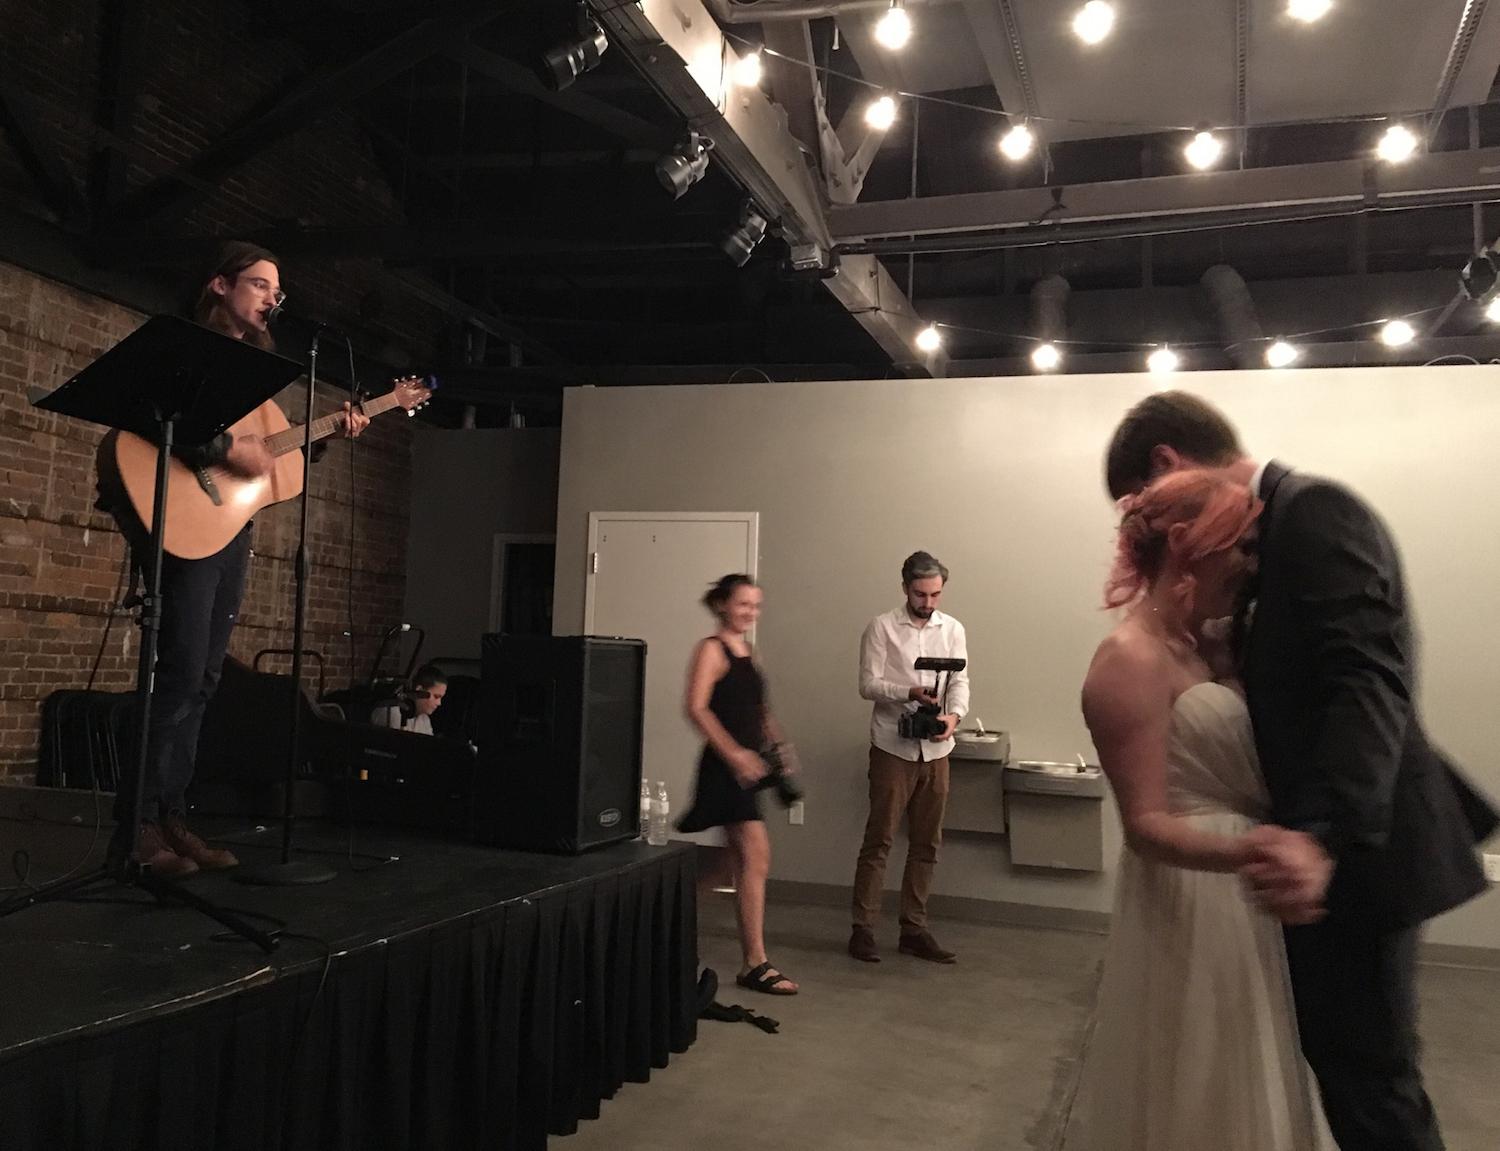 Chris Farren surprises a groom at his wedding with a performance, and the couple dances.